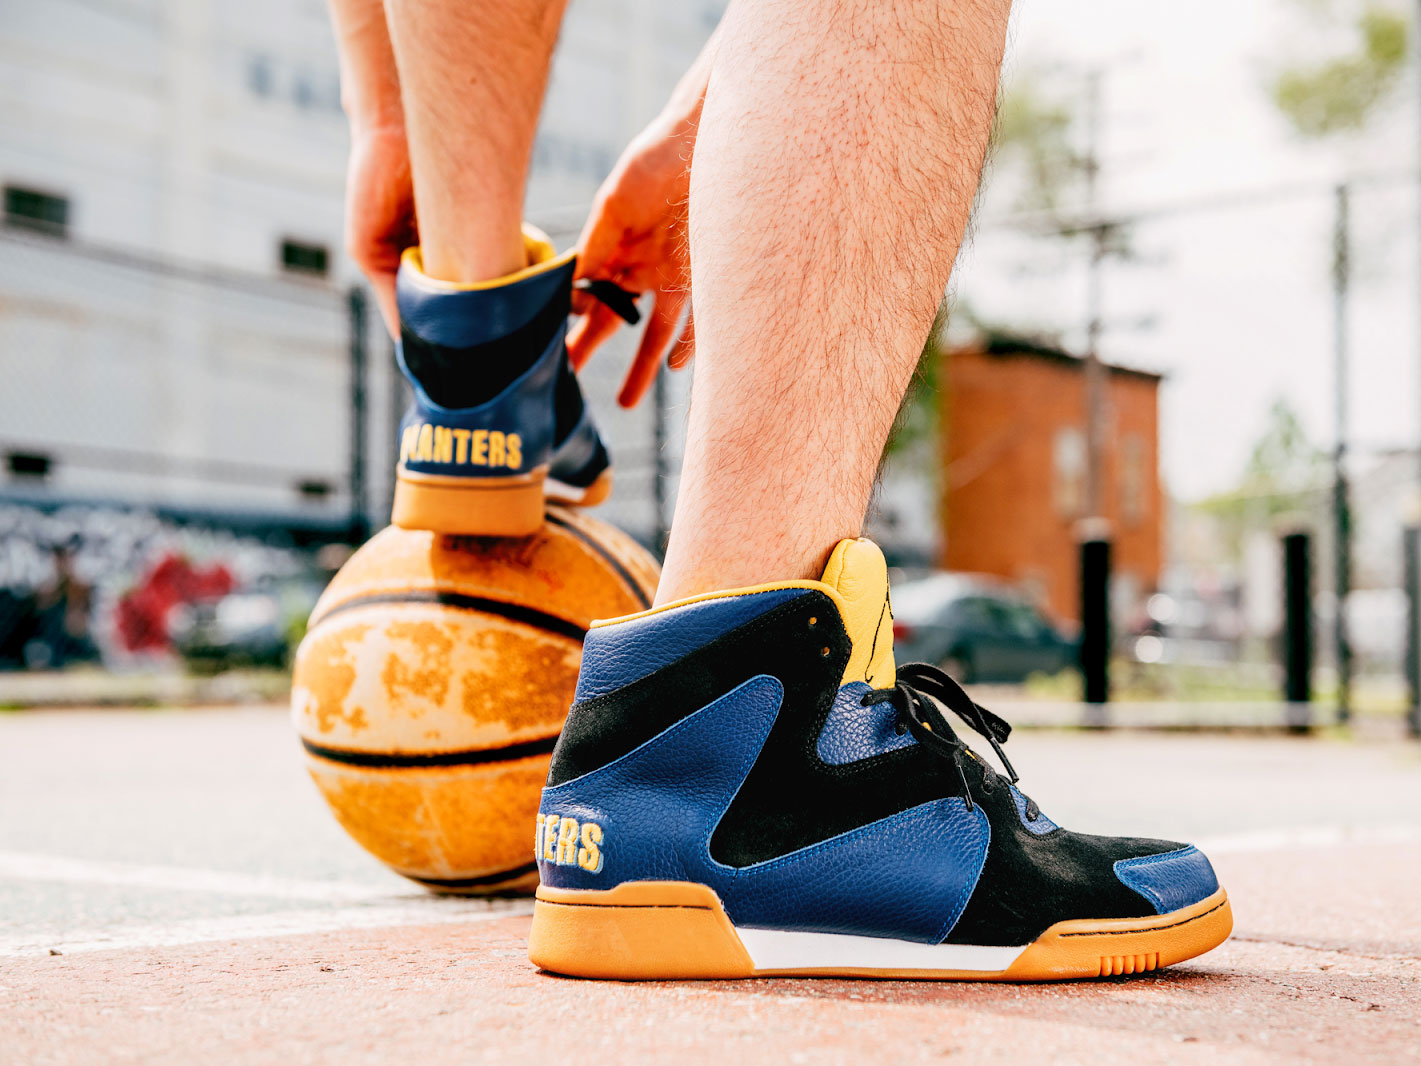 Crunch Force 1 Shoes